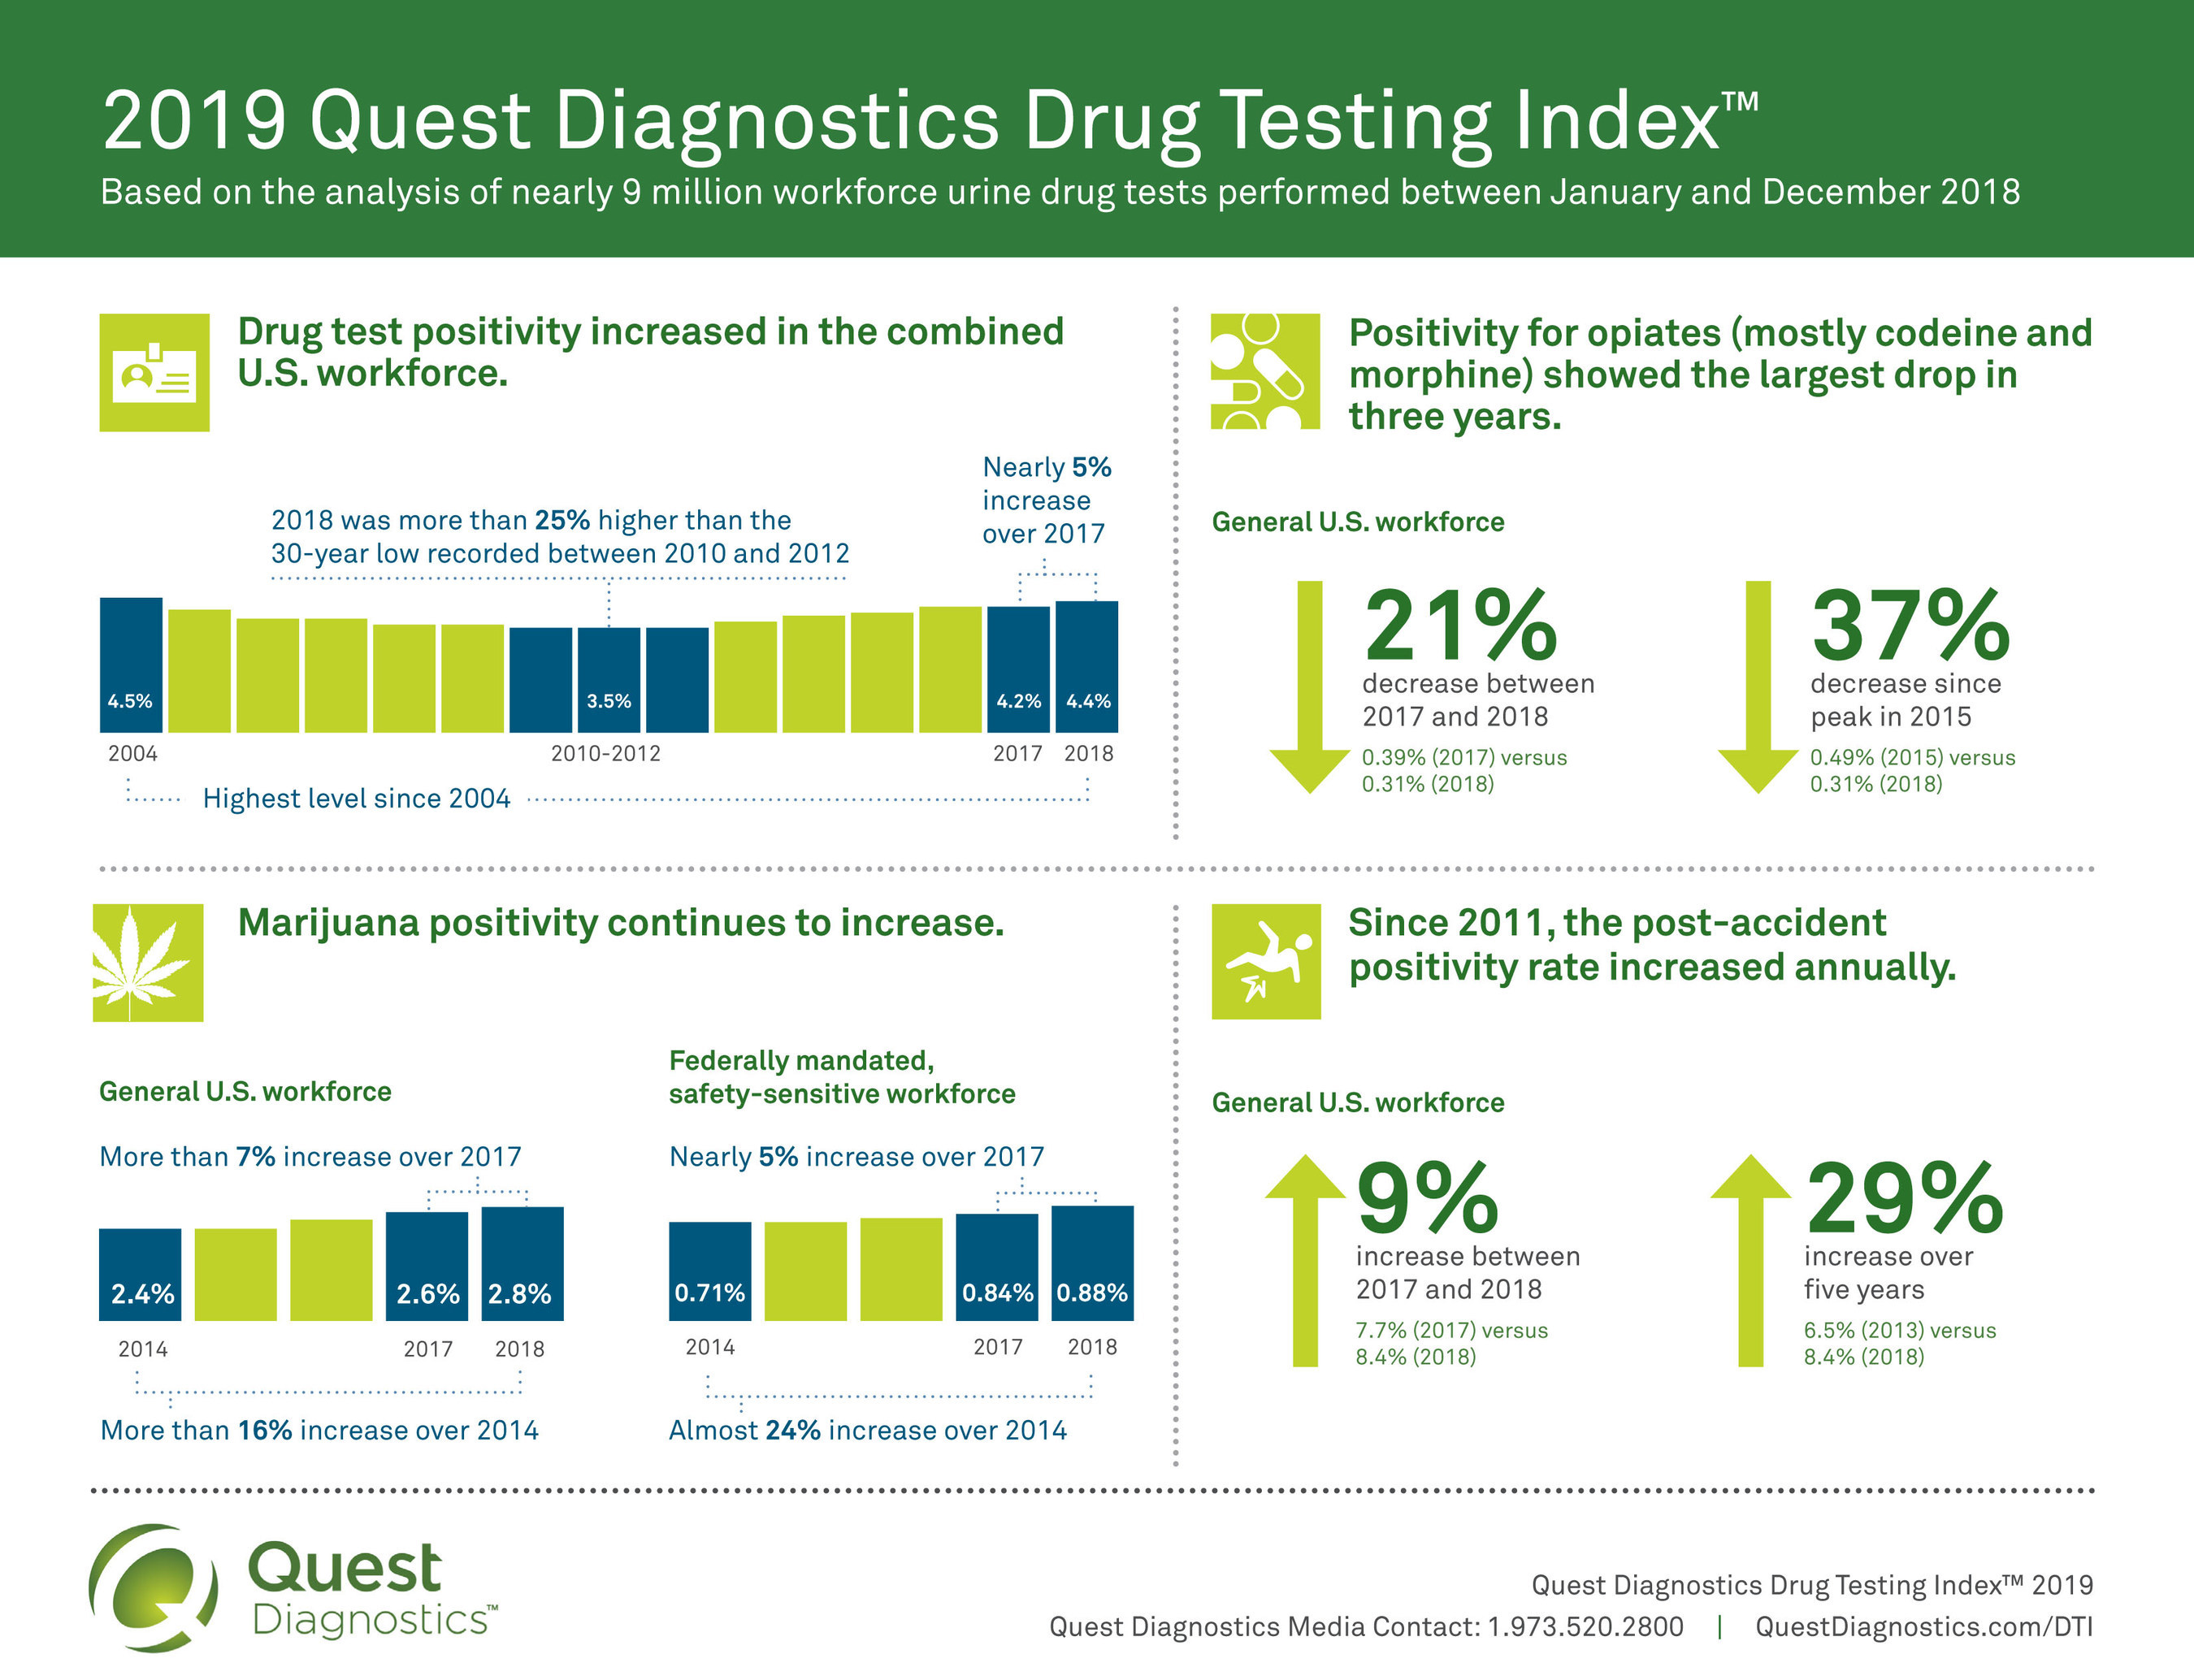 Workforce Drug Testing Positivity Climbs To Highest Rate Since 2004 According To New Quest Diagnostics Analysis